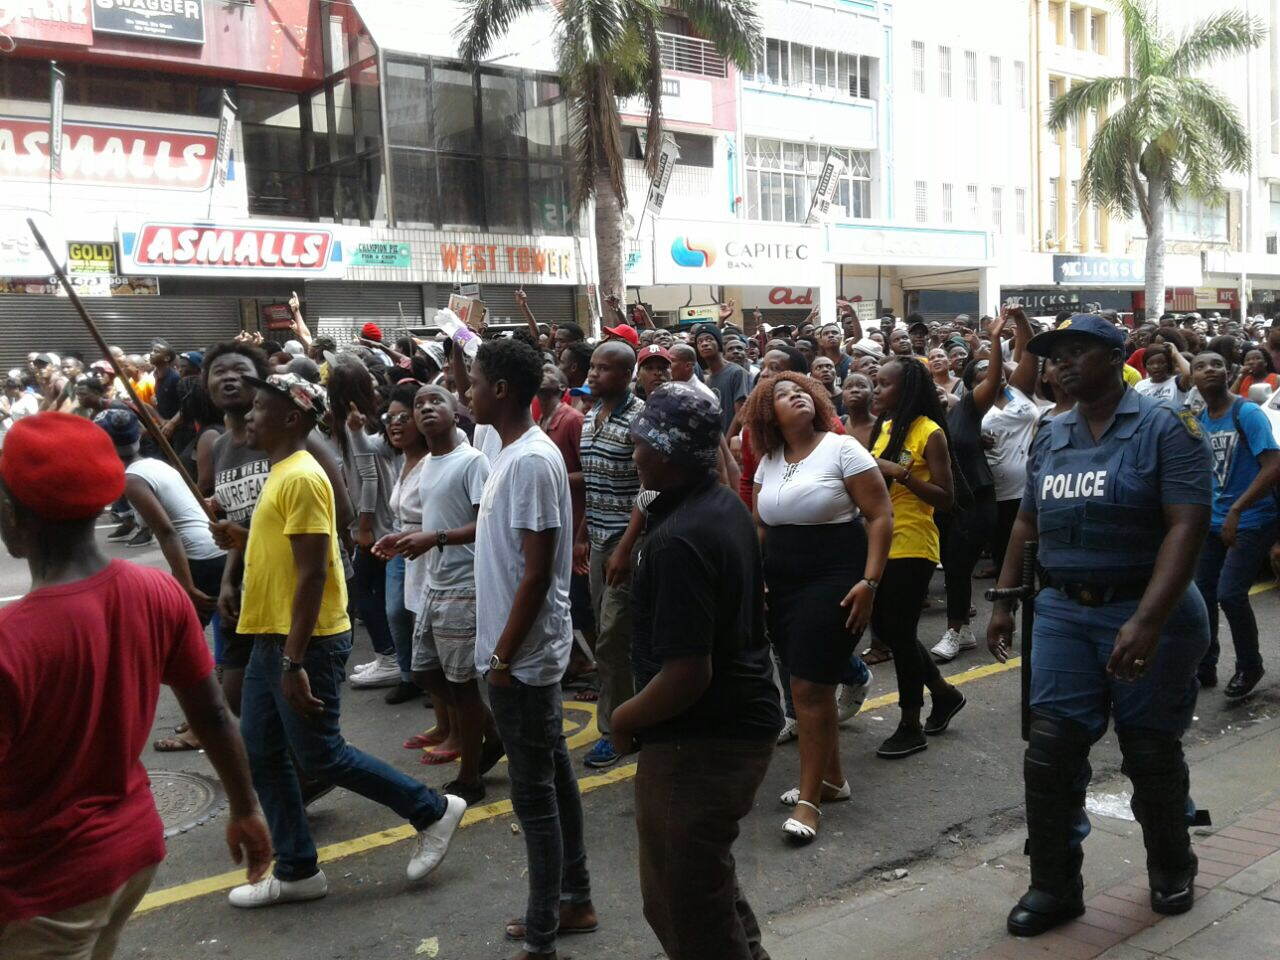 Students marching on West Street. #KZNFMF